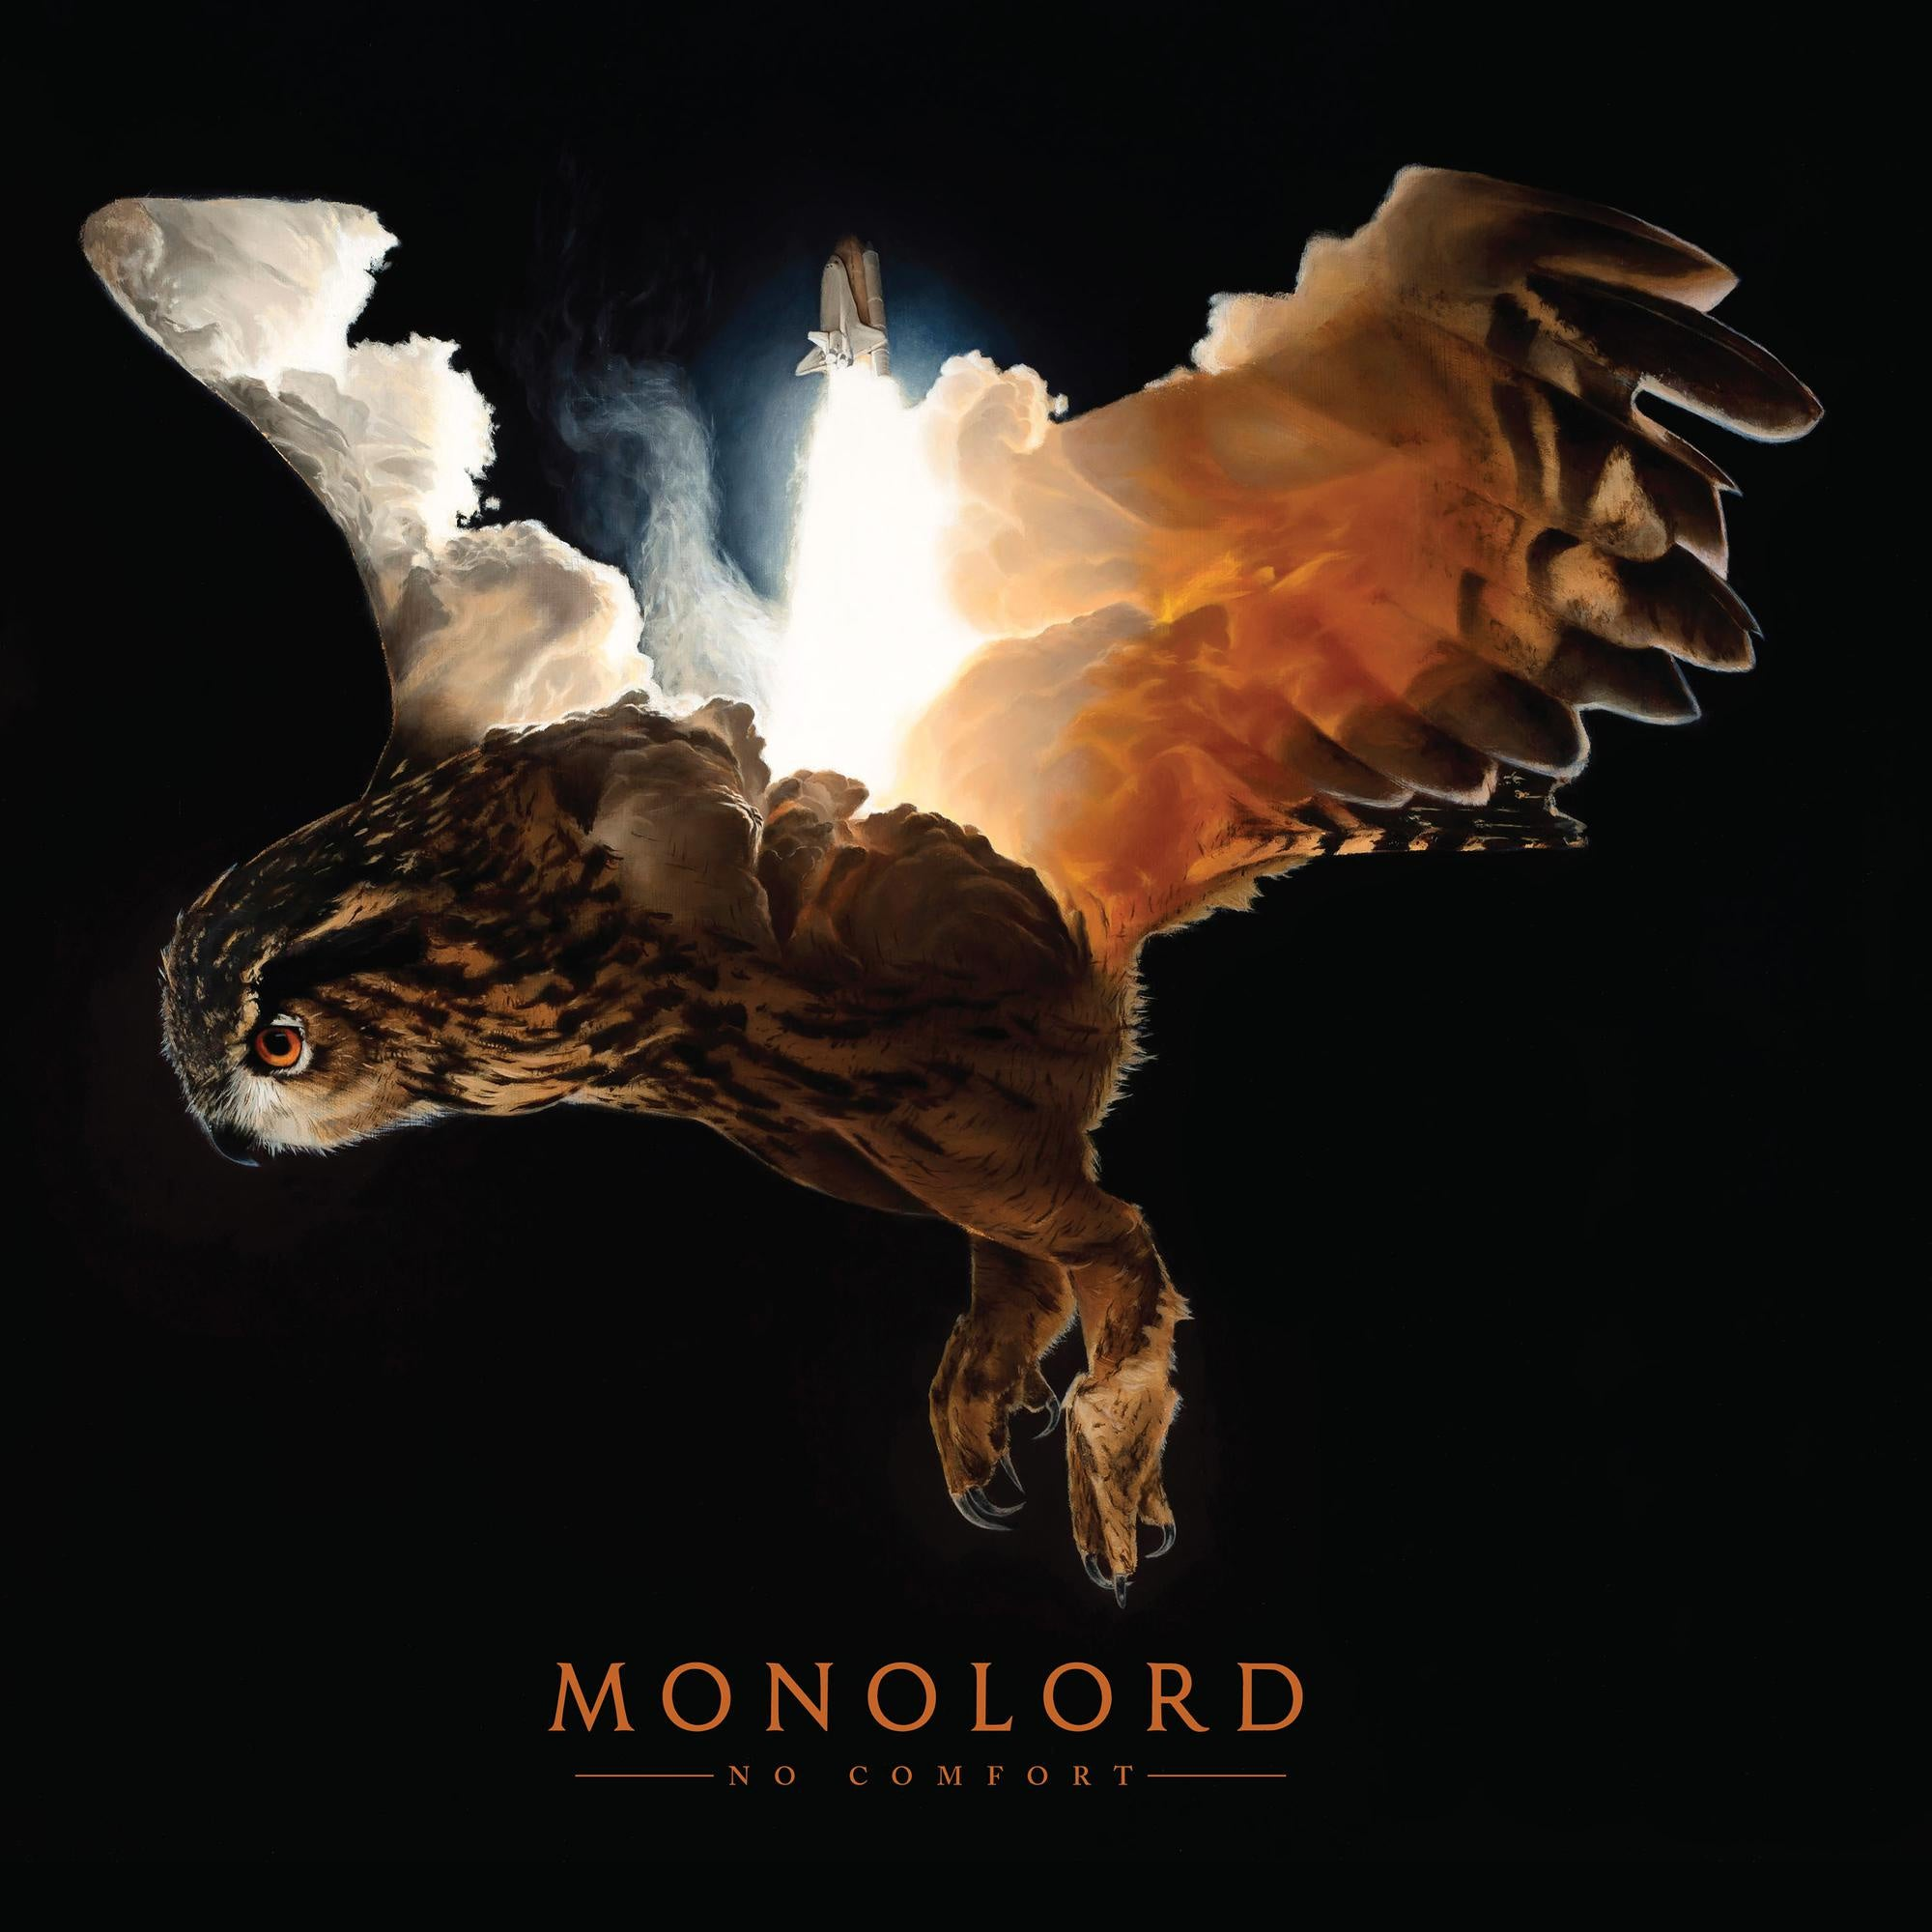 Monolord ‎– No Comfort - New 2 LP Record 2019 Relapse USA Etched Vinyl - Doom Metal